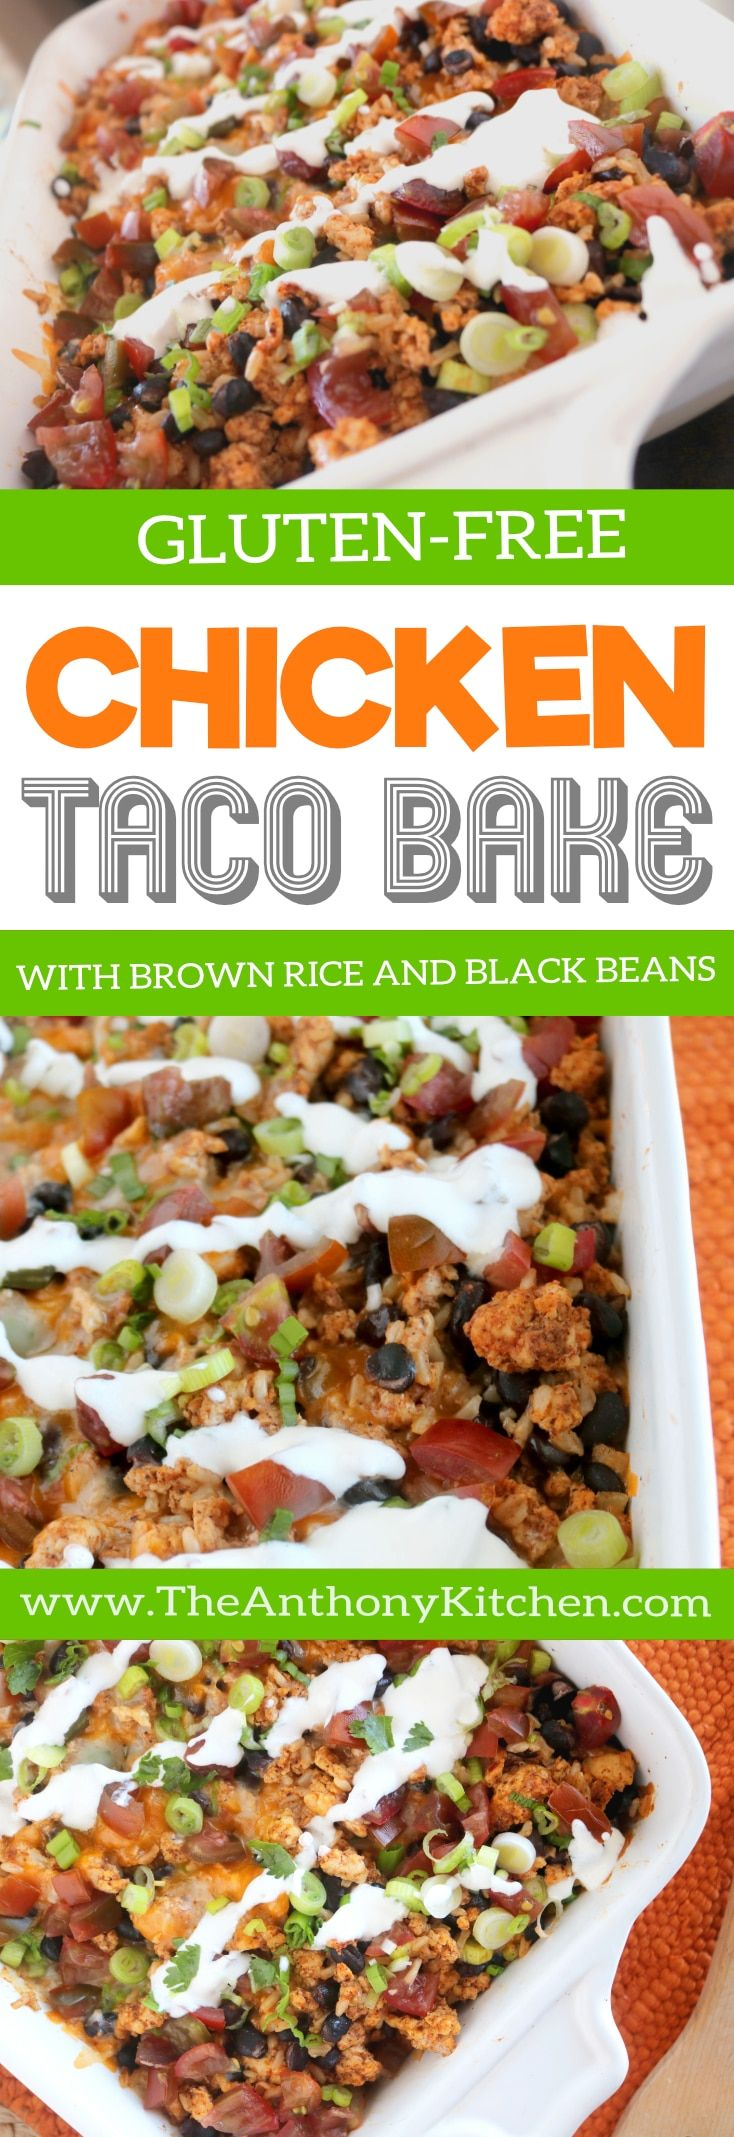 CHICKEN TACO BAKE RECIPE | A healthy, Tex-Mex casserole recipe featuring seasoning ground chicken, brown rice, black beans, and traditional taco toppings